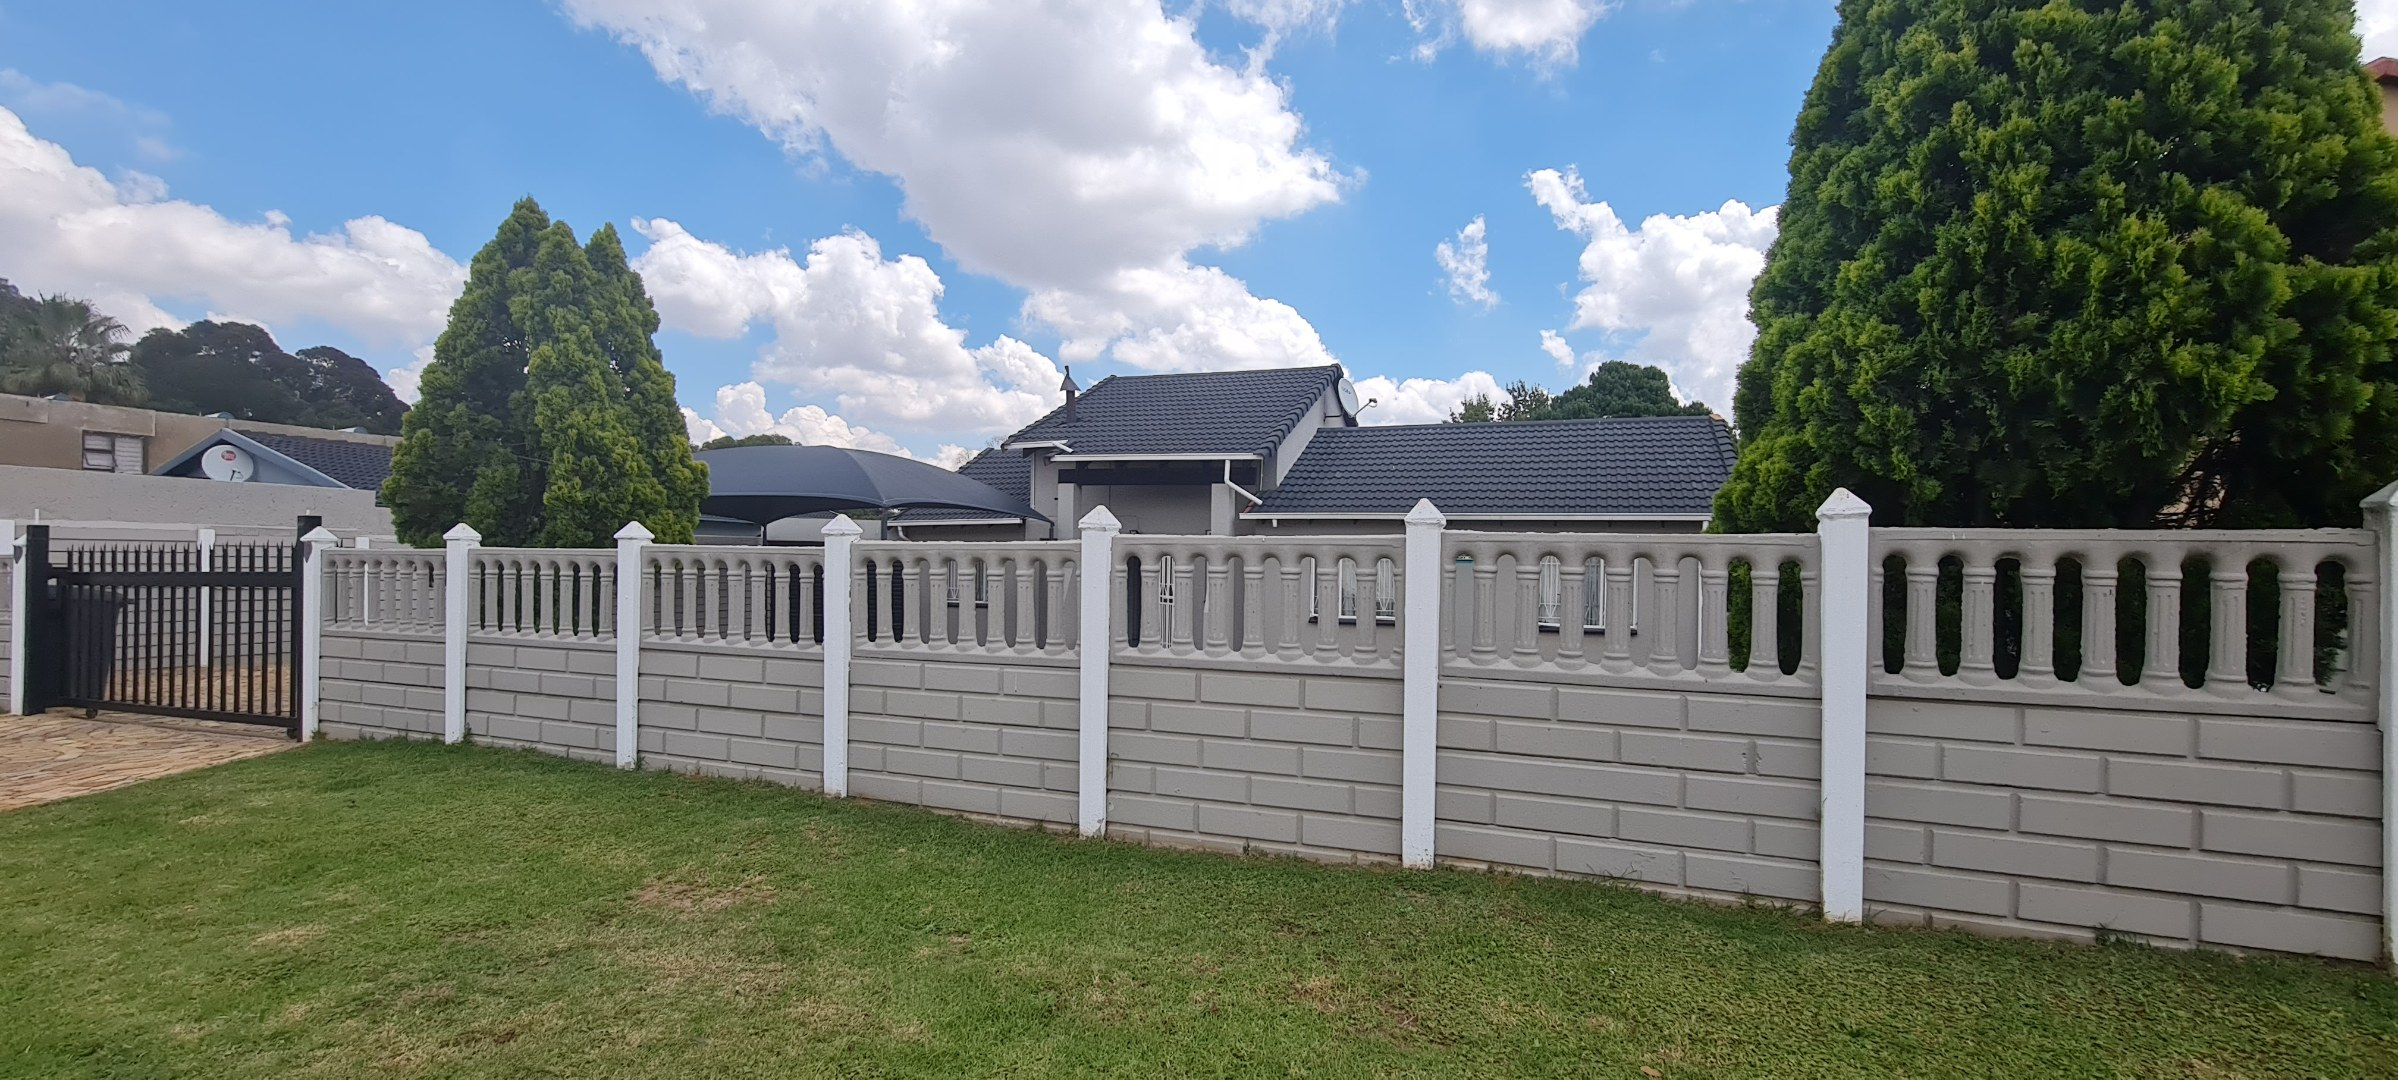 4 Bedroom House For Sale in Ormonde